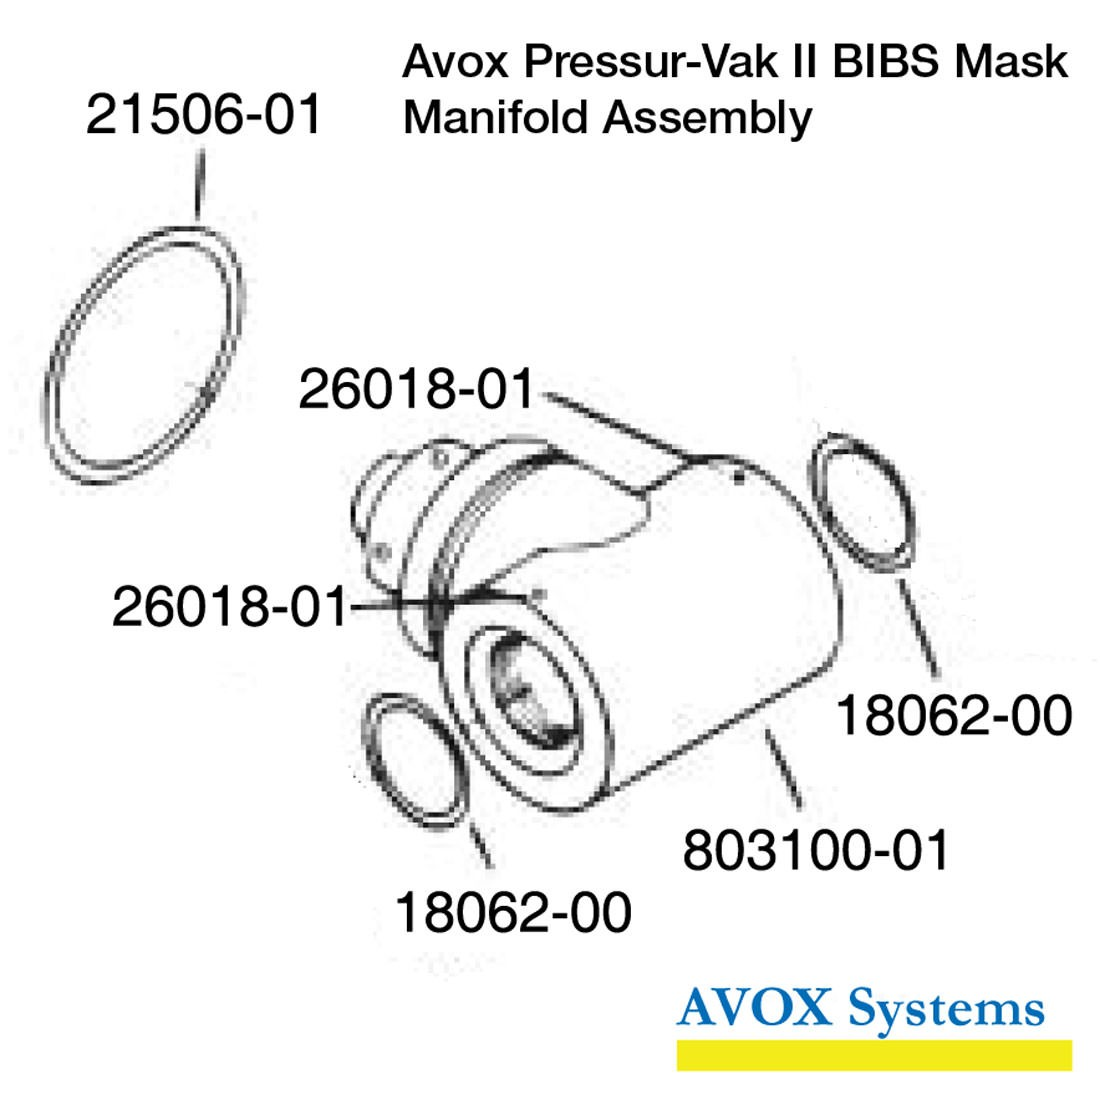 Avox 803139-01-XX Pressur-Vak II - without Face Seal/Harness without 1st Stage Regulator Assembly without Microphone - Manifold Assembly